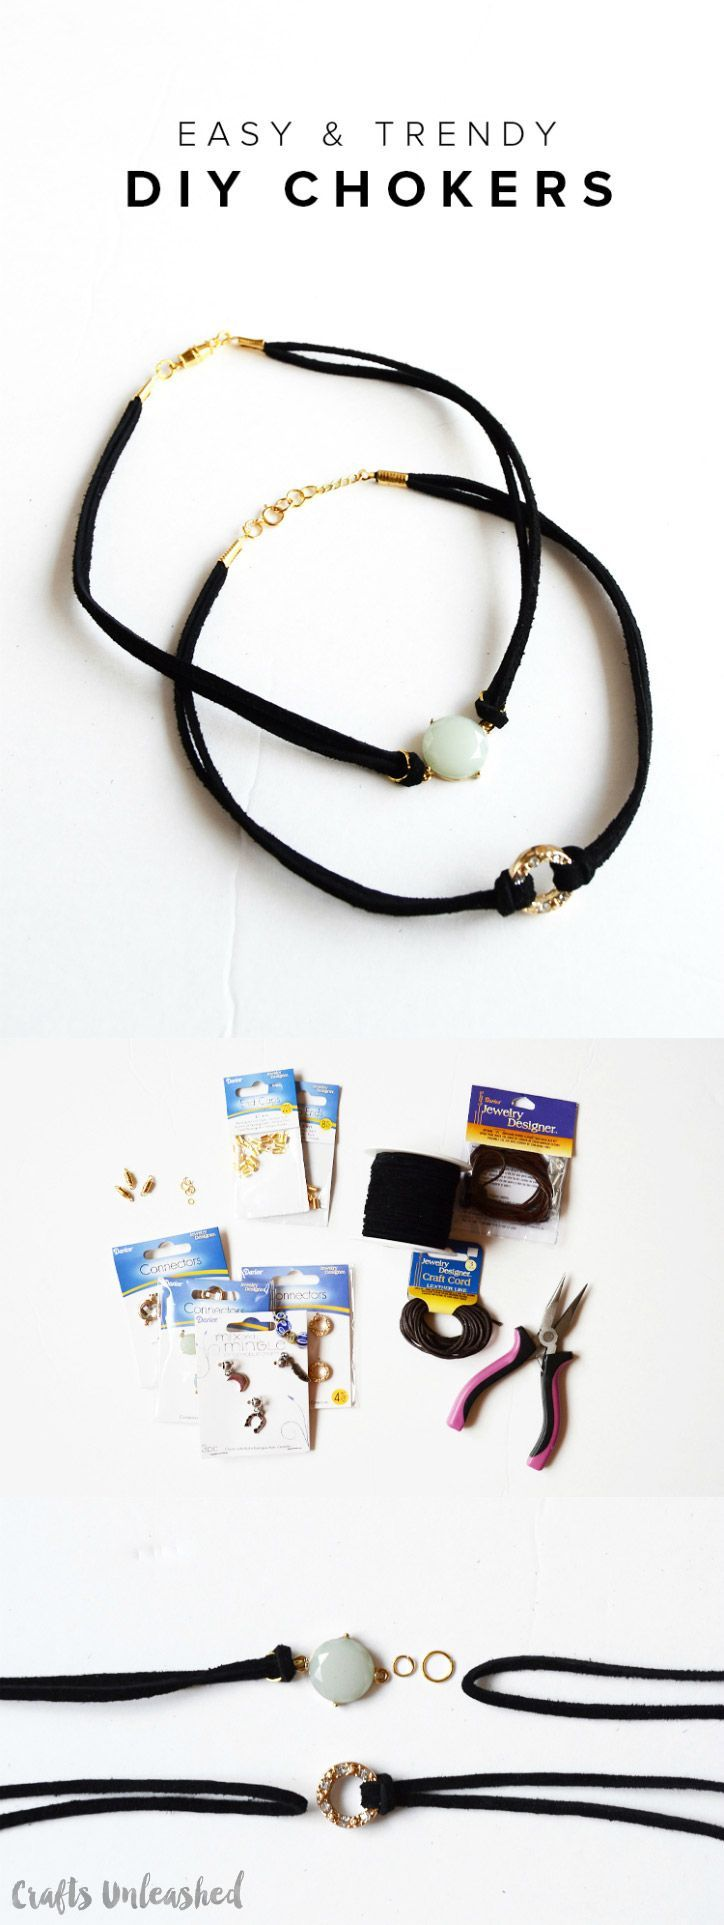 Easy & Trendy DIY Chokers